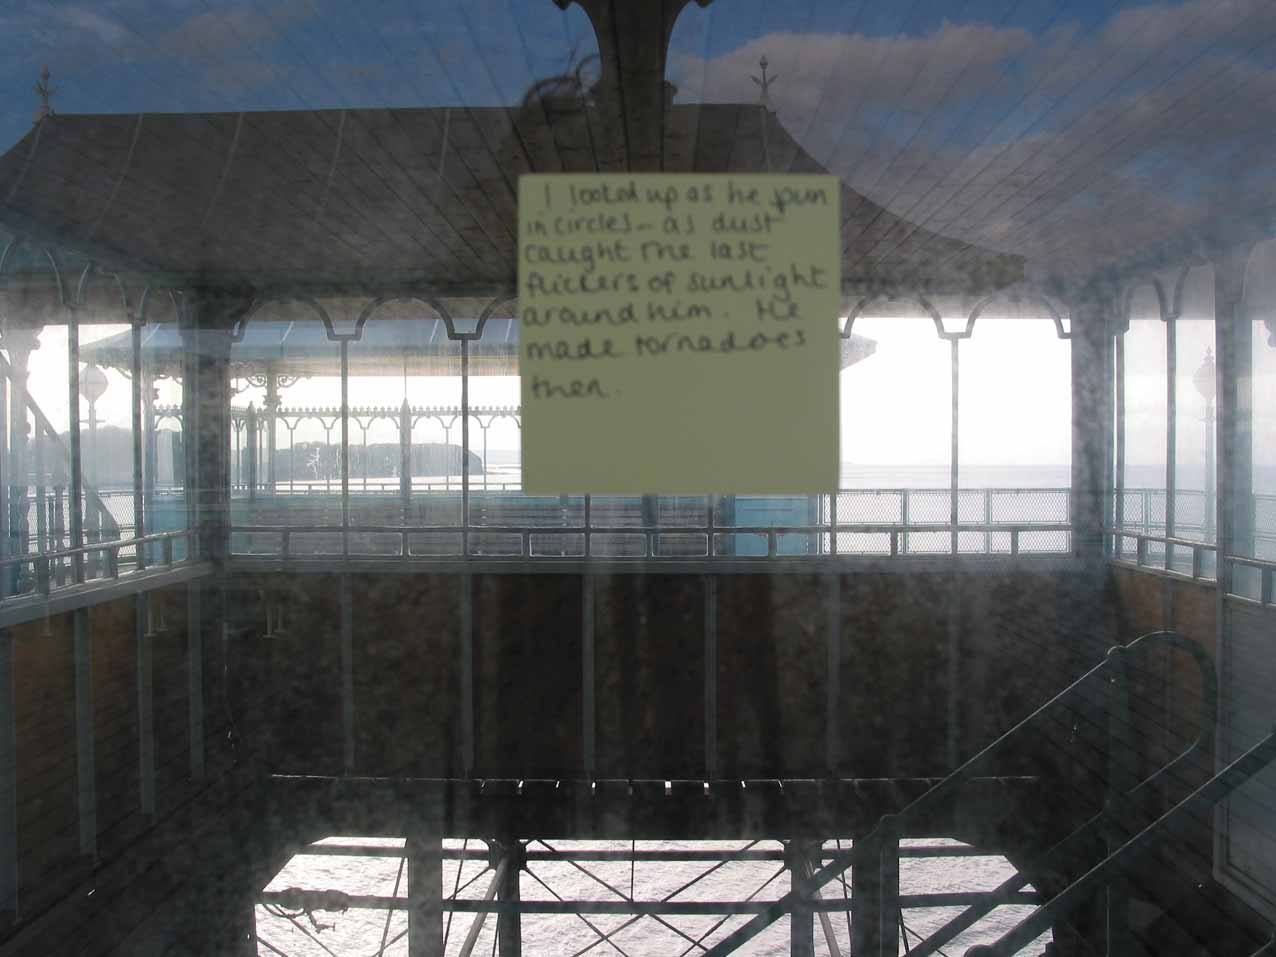 Post-It note, Clevedon, 2002